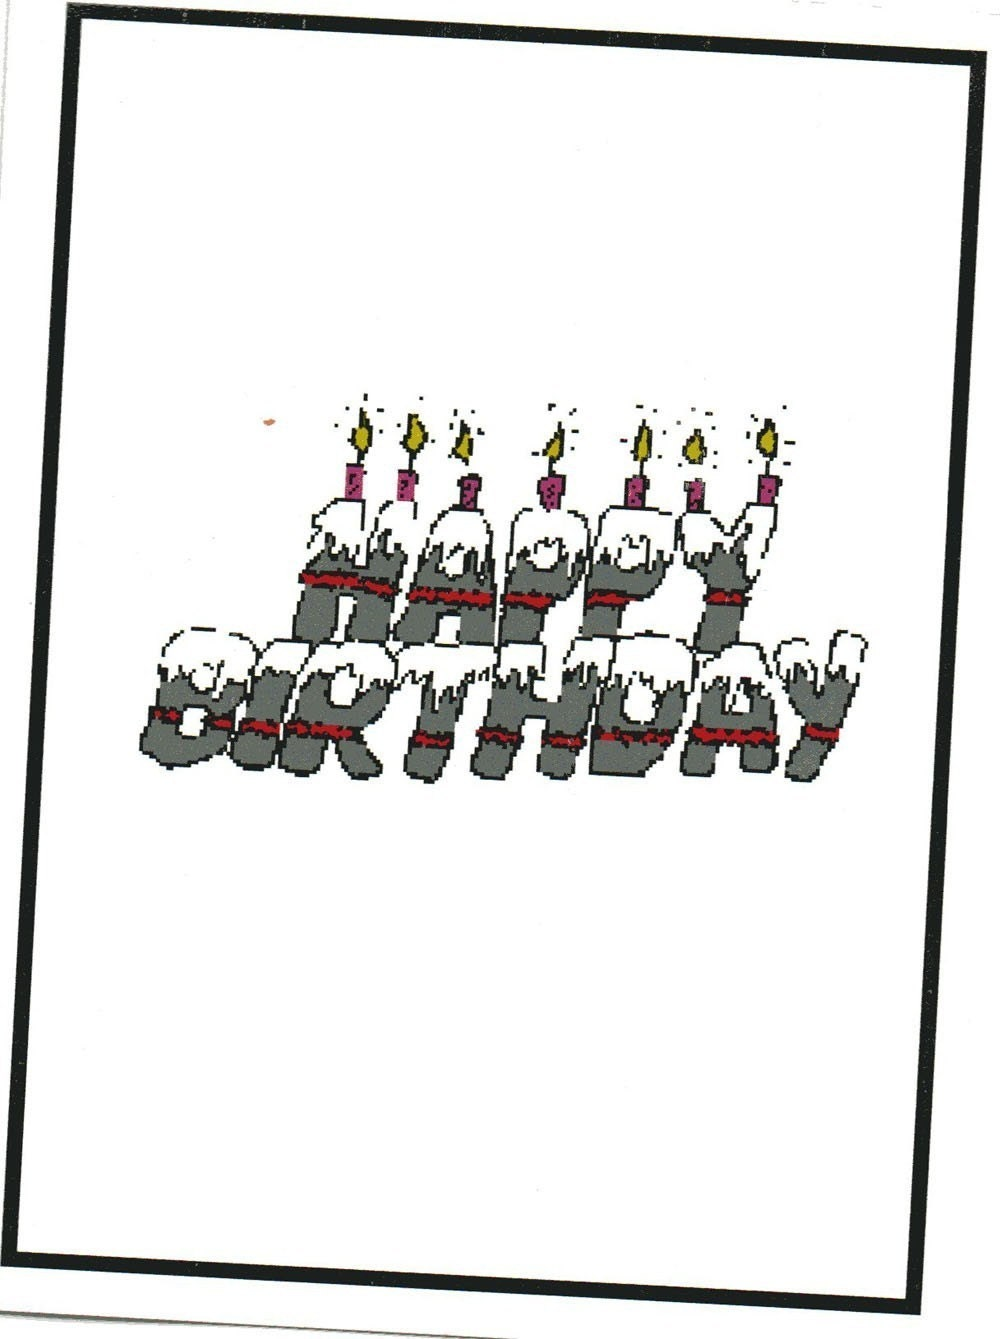 Mature Happy Birthday Greeting Card - Adults Only. From naughtyornicecards